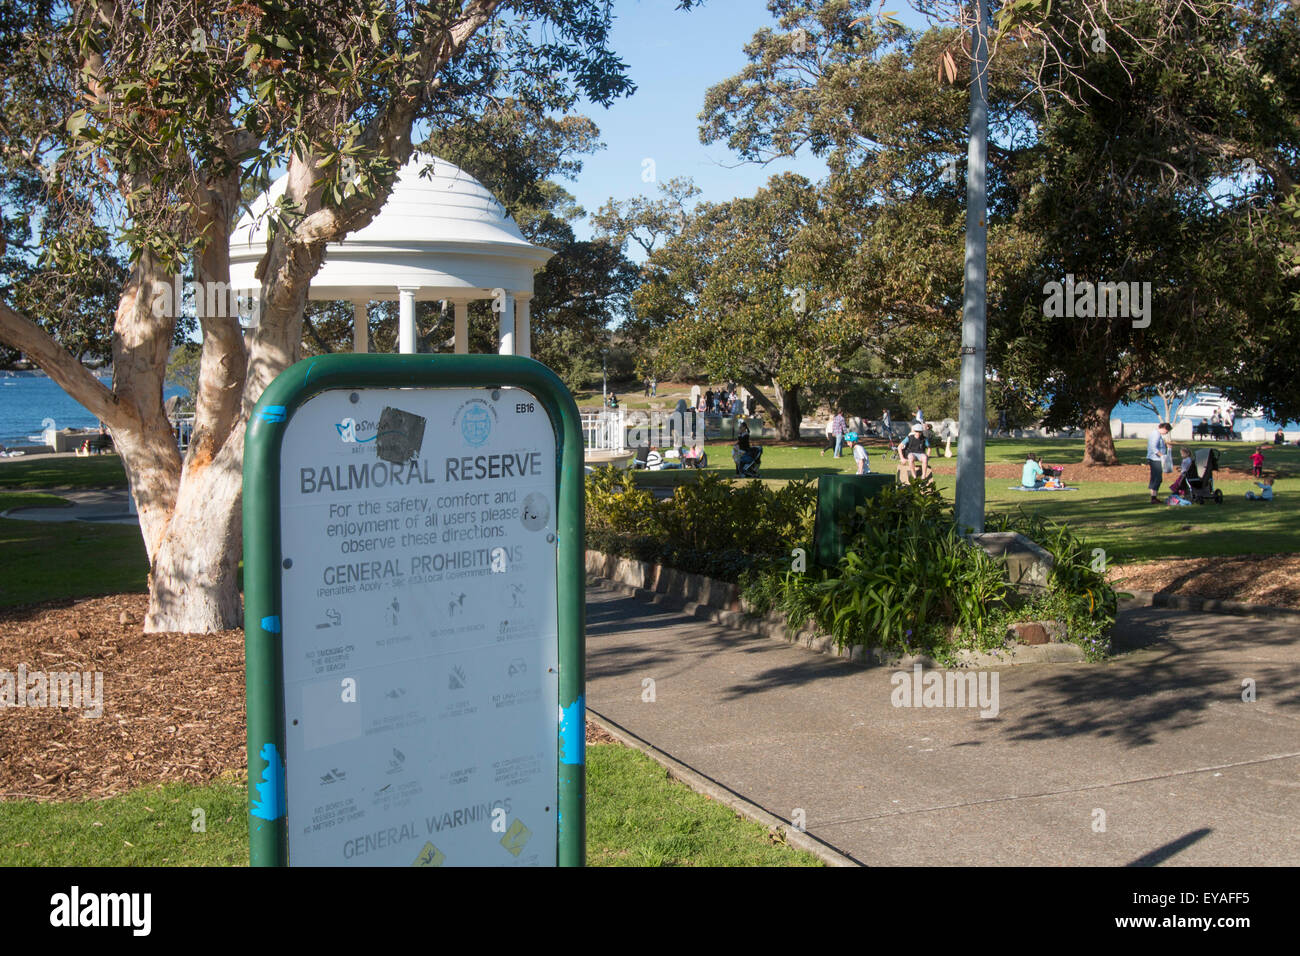 Balmoral Reserve at Balmoral Beach suburb in Sydney,new south wales,australia - Stock Image